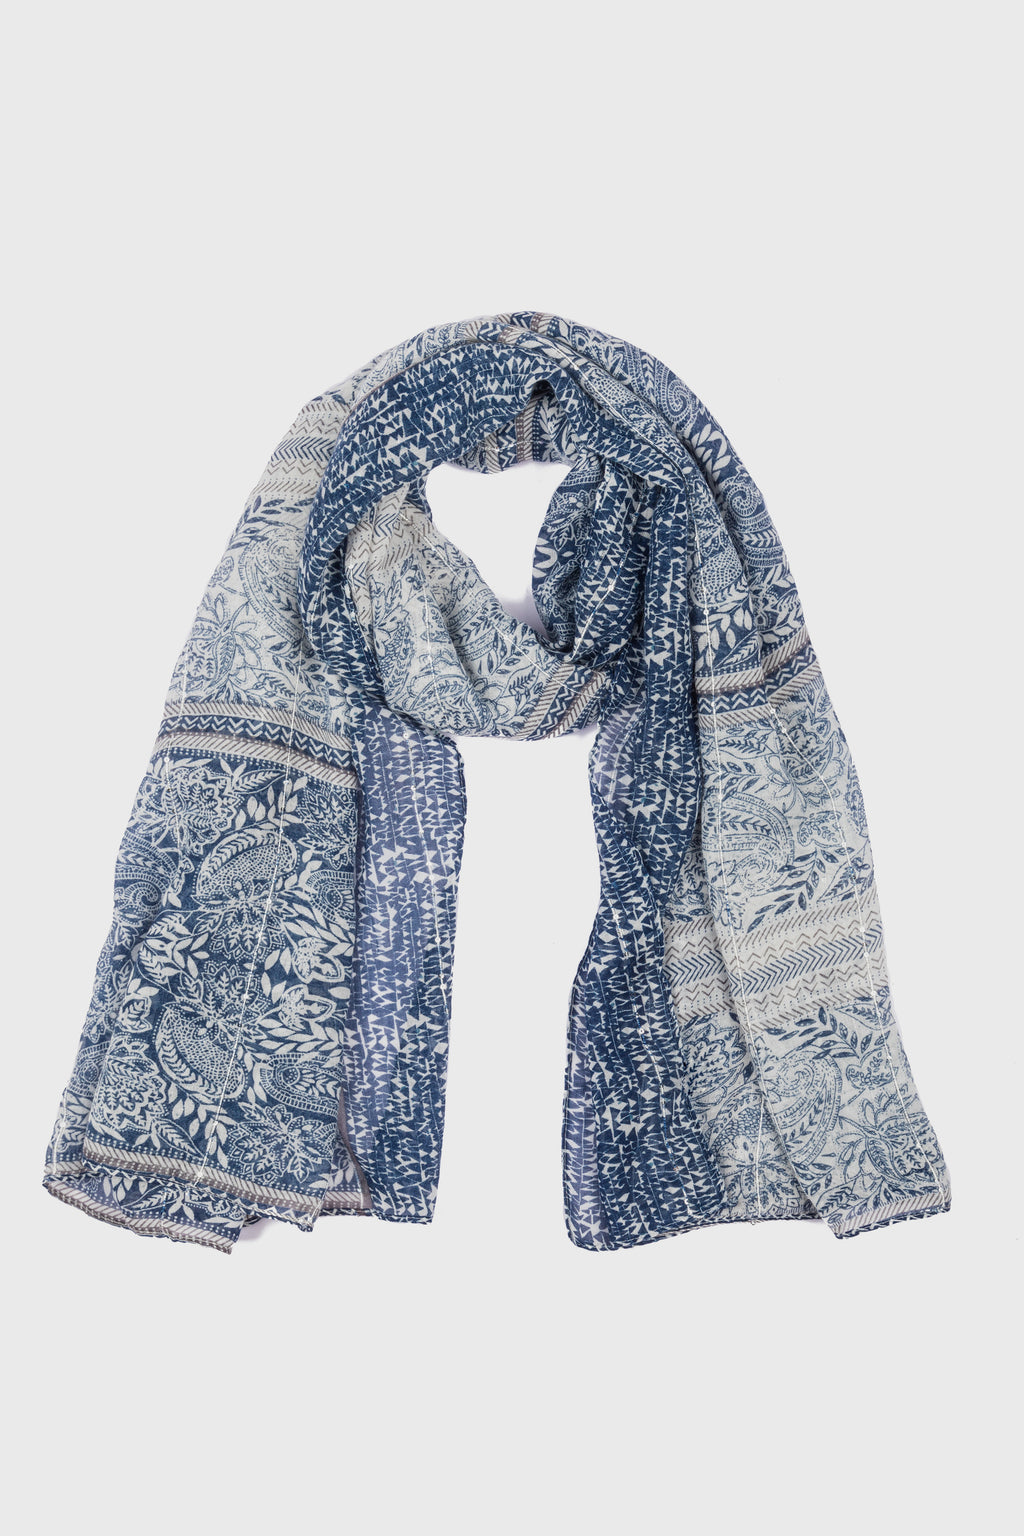 Paisley Printed Scarf With Lurex & Sequins (BSS3756)-SCARF-BaySky